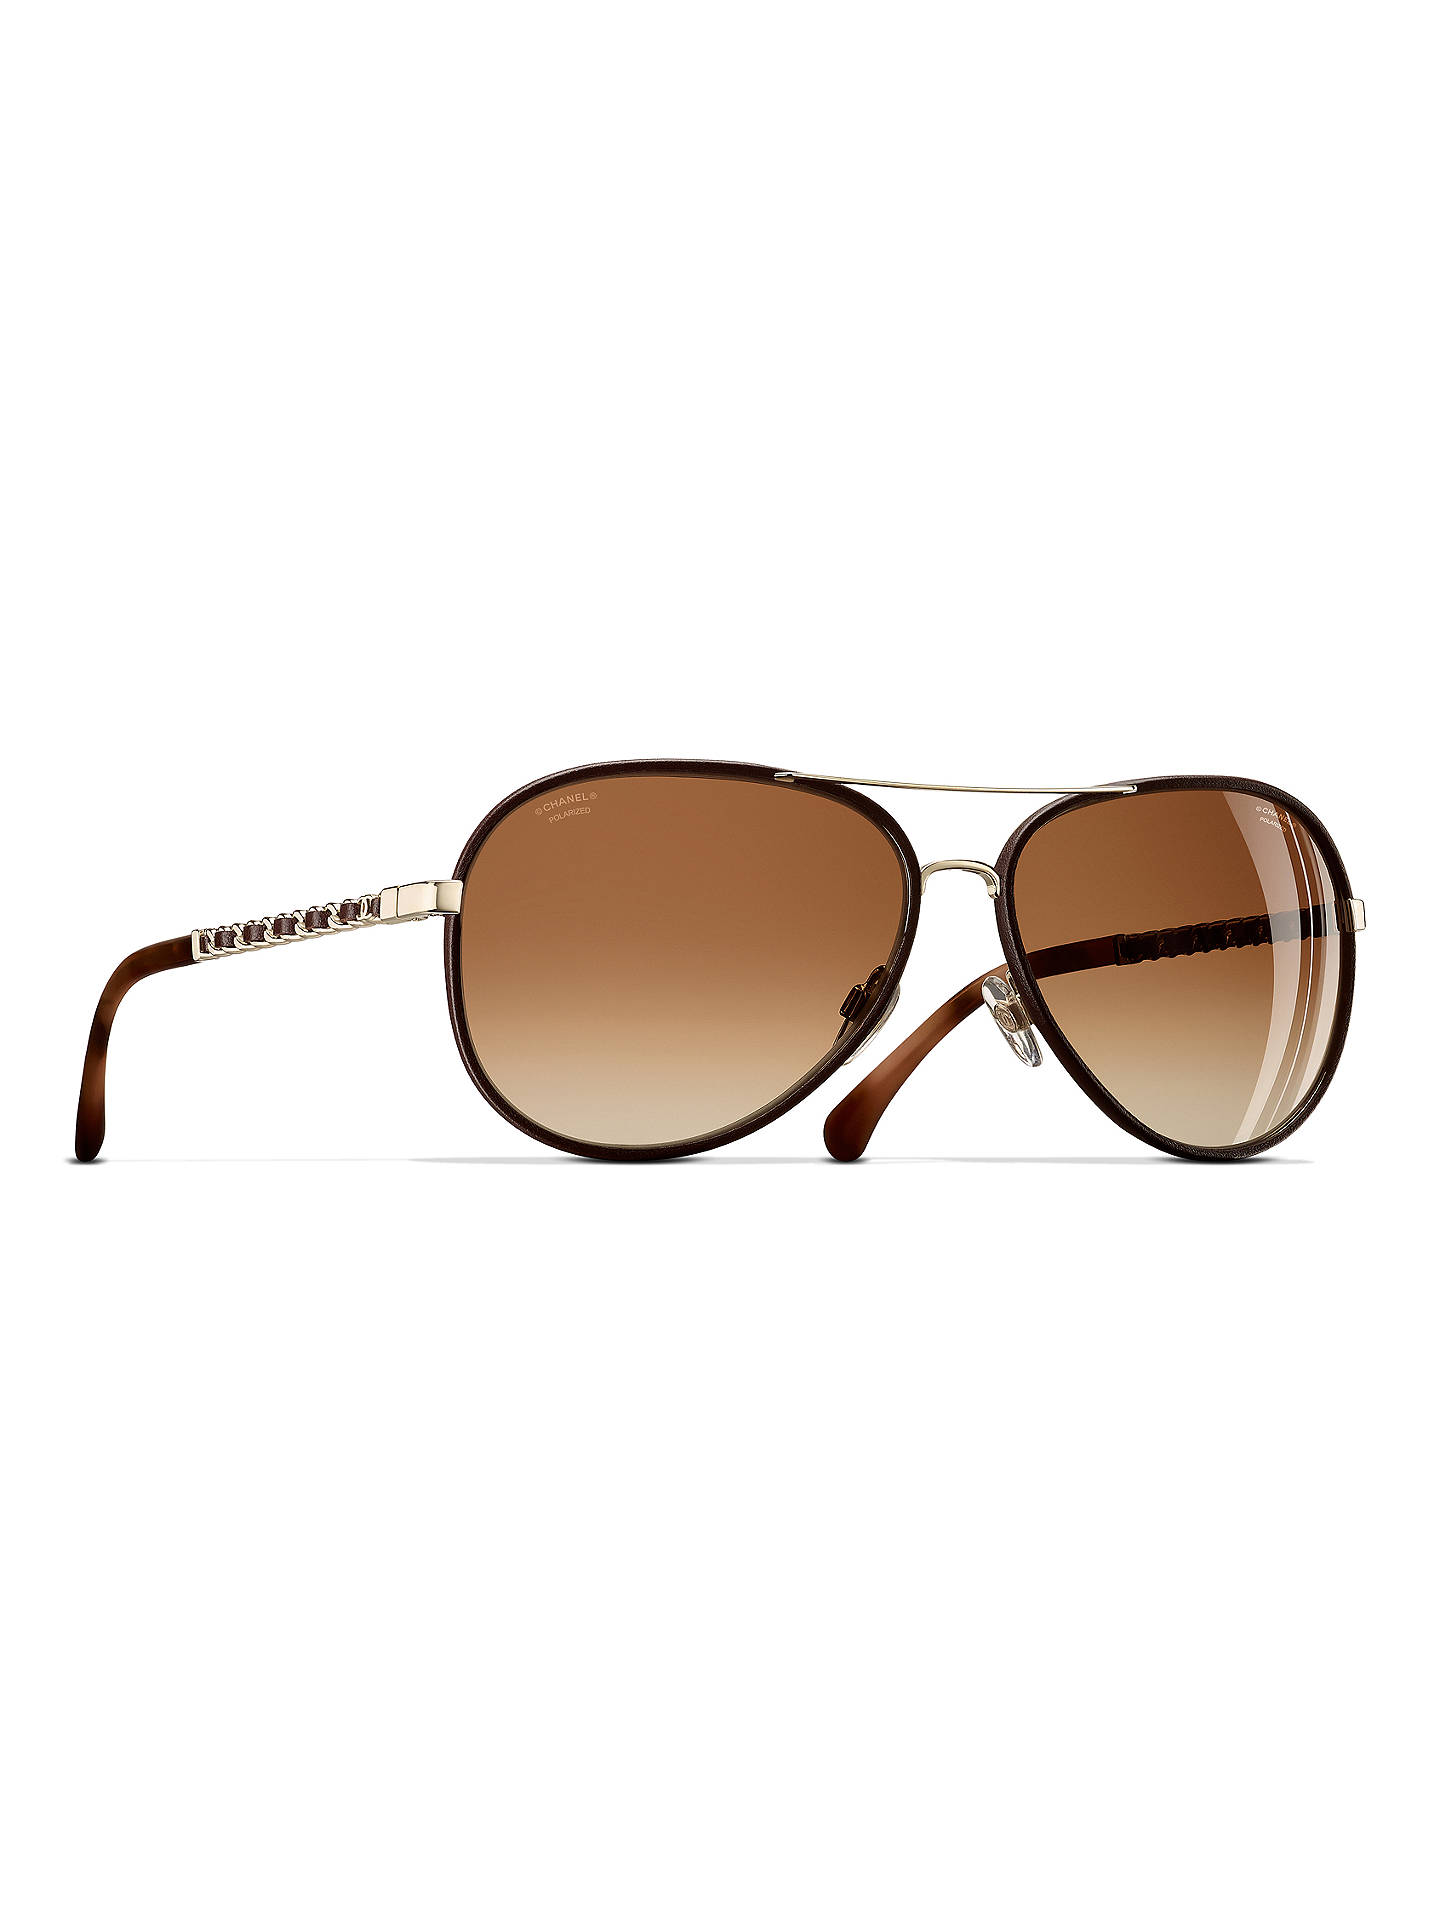 38fcd0028f BuyCHANEL Pilot Sunglasses CH4219Q Gold Brown Online at johnlewis.com ...